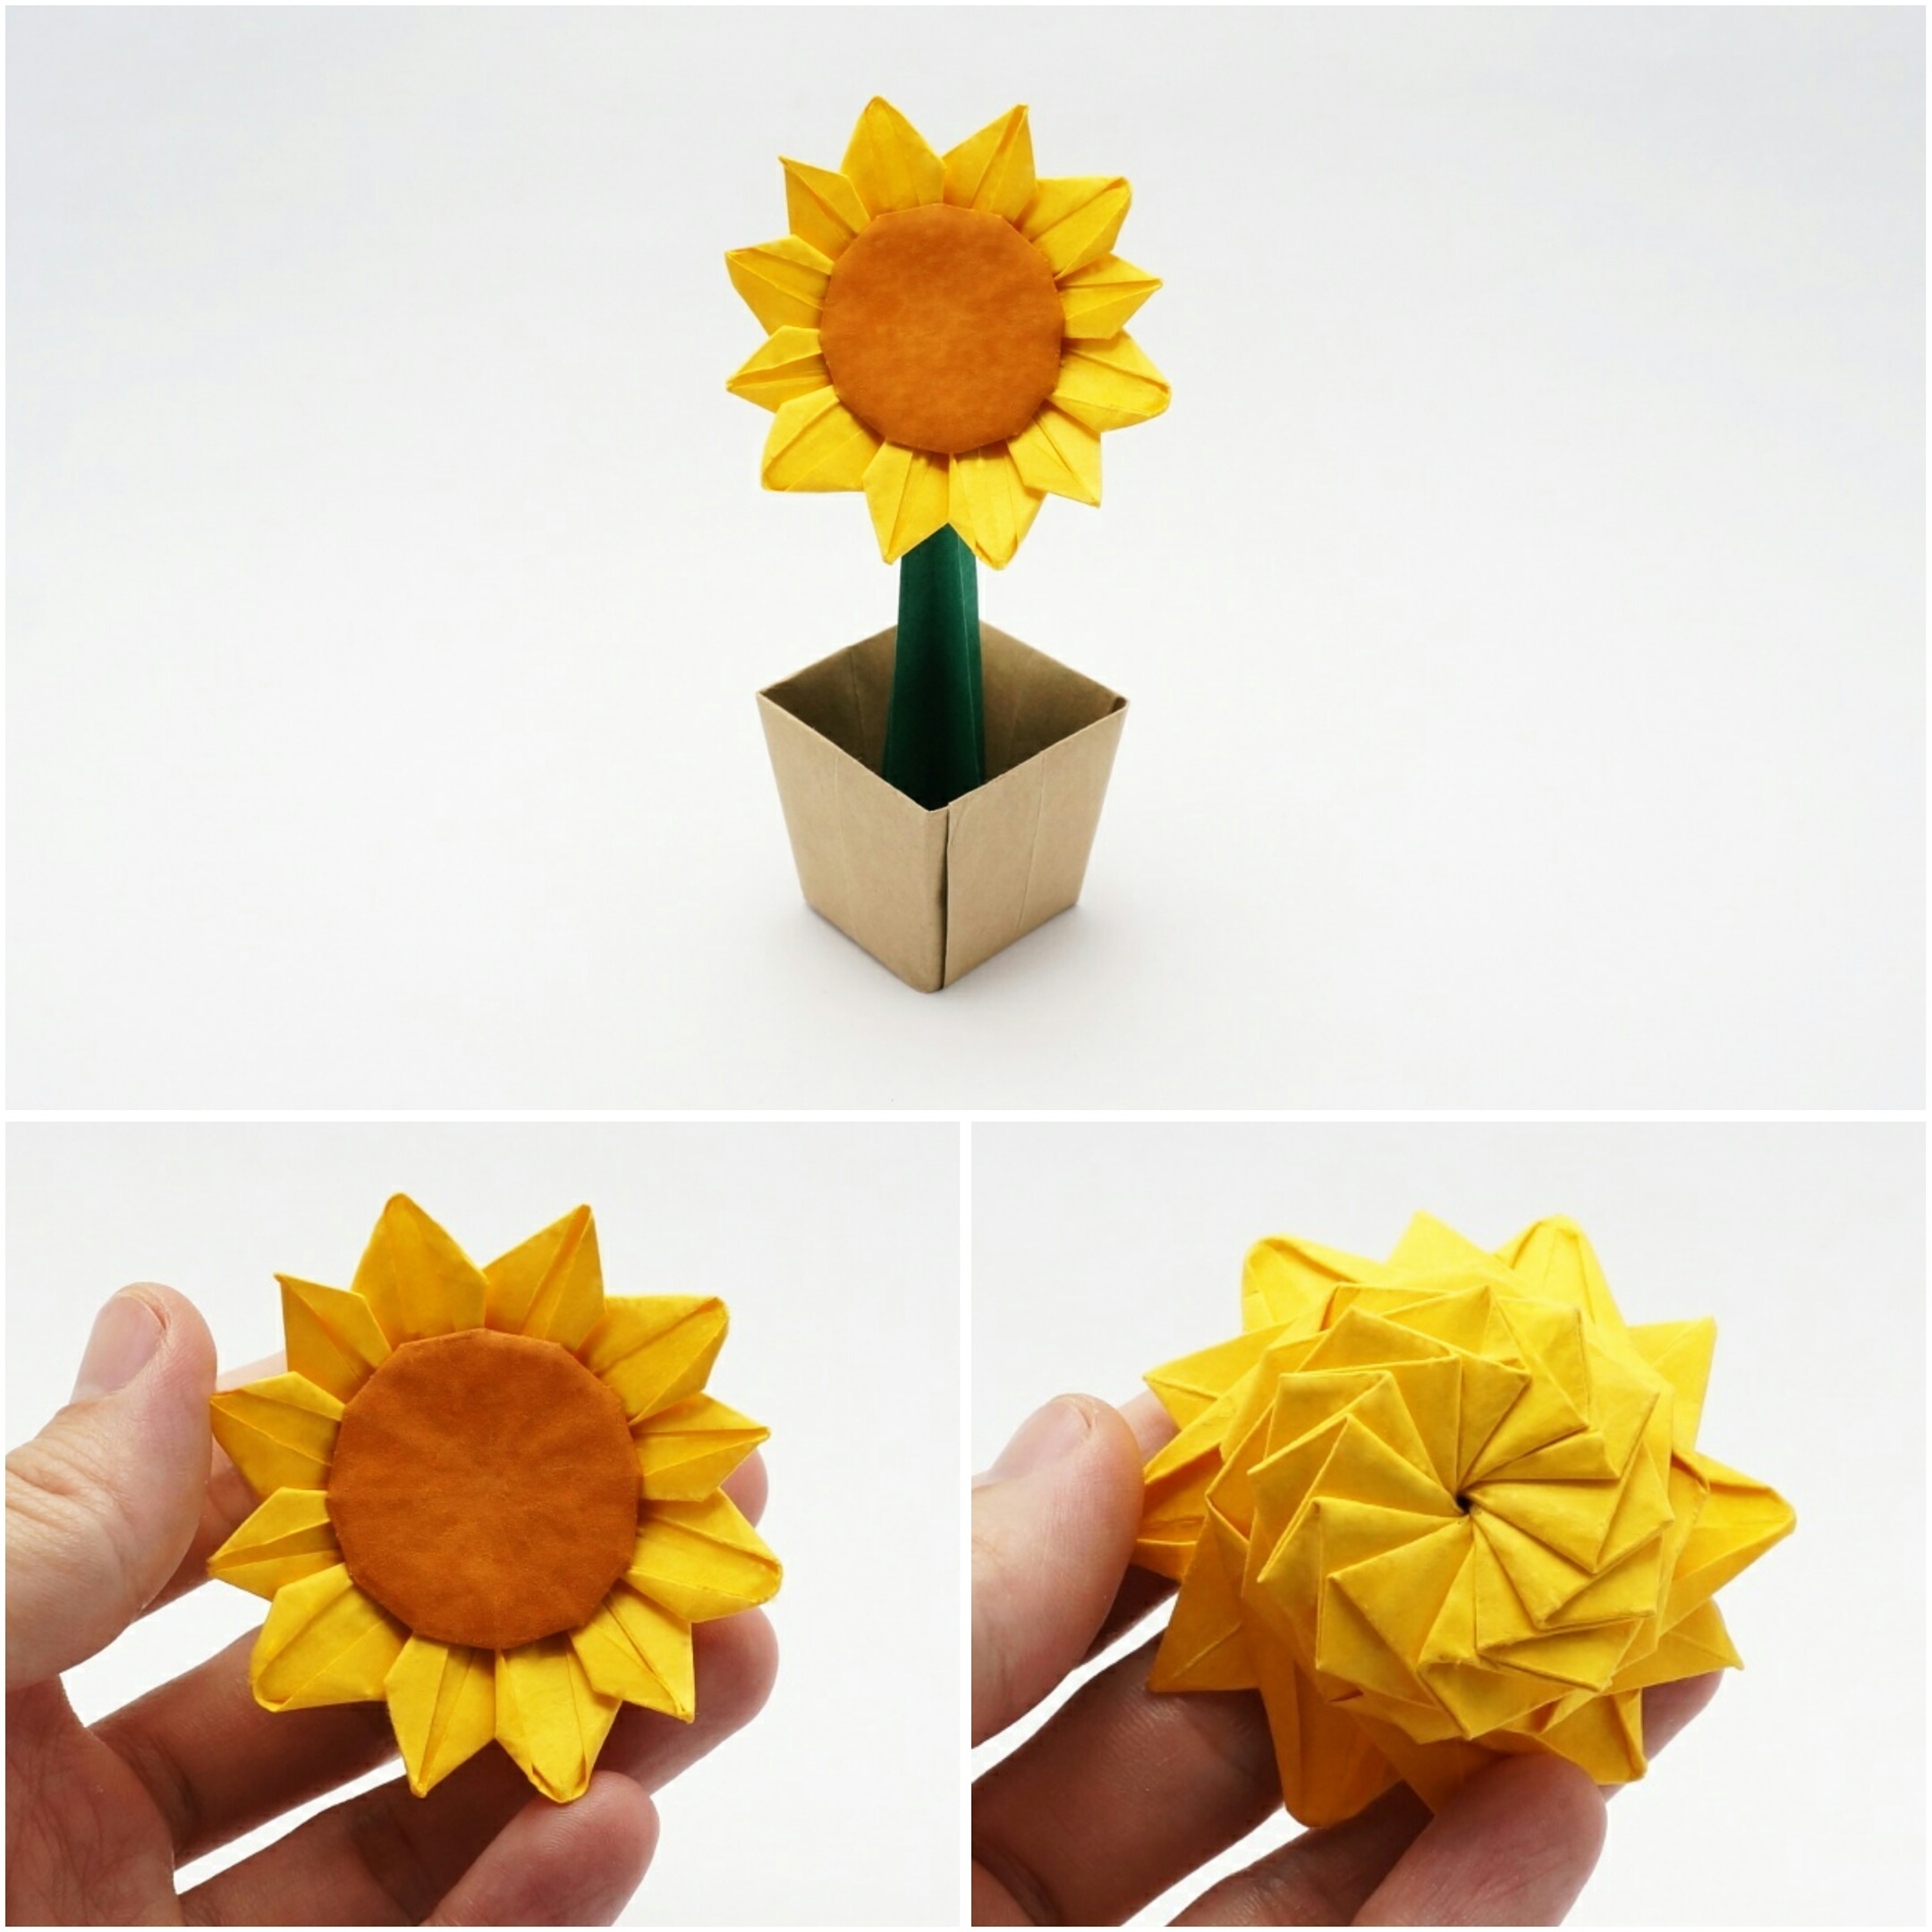 Origami sunflower jo nakashima origami sunflower designed by jo nakashima 022017 difficulty level high intermediate diagrams not available suggested paper sizes ccuart Images